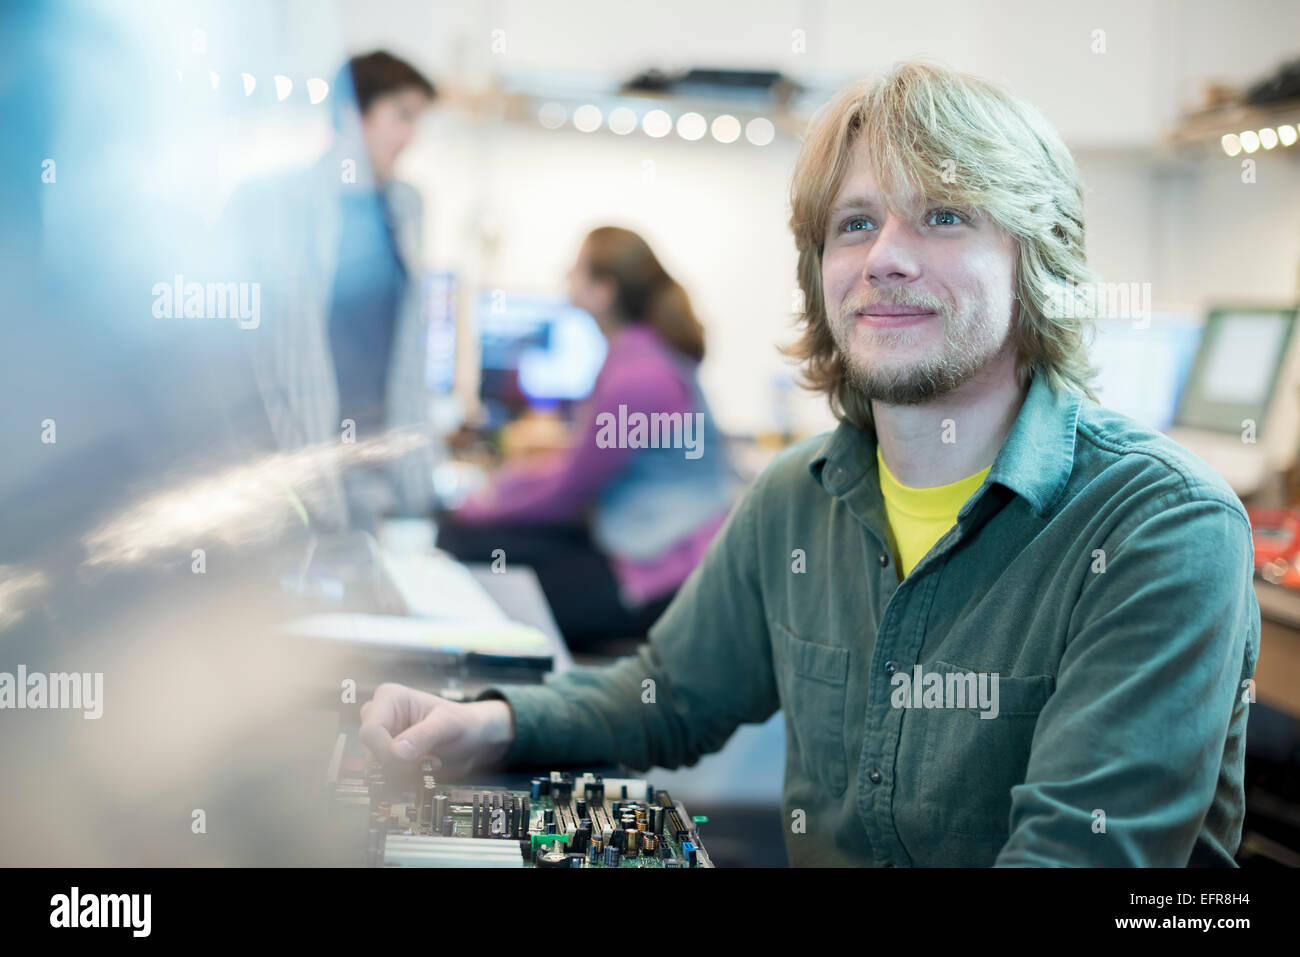 A young man and two colleagues working in a computer shop. - Stock Image